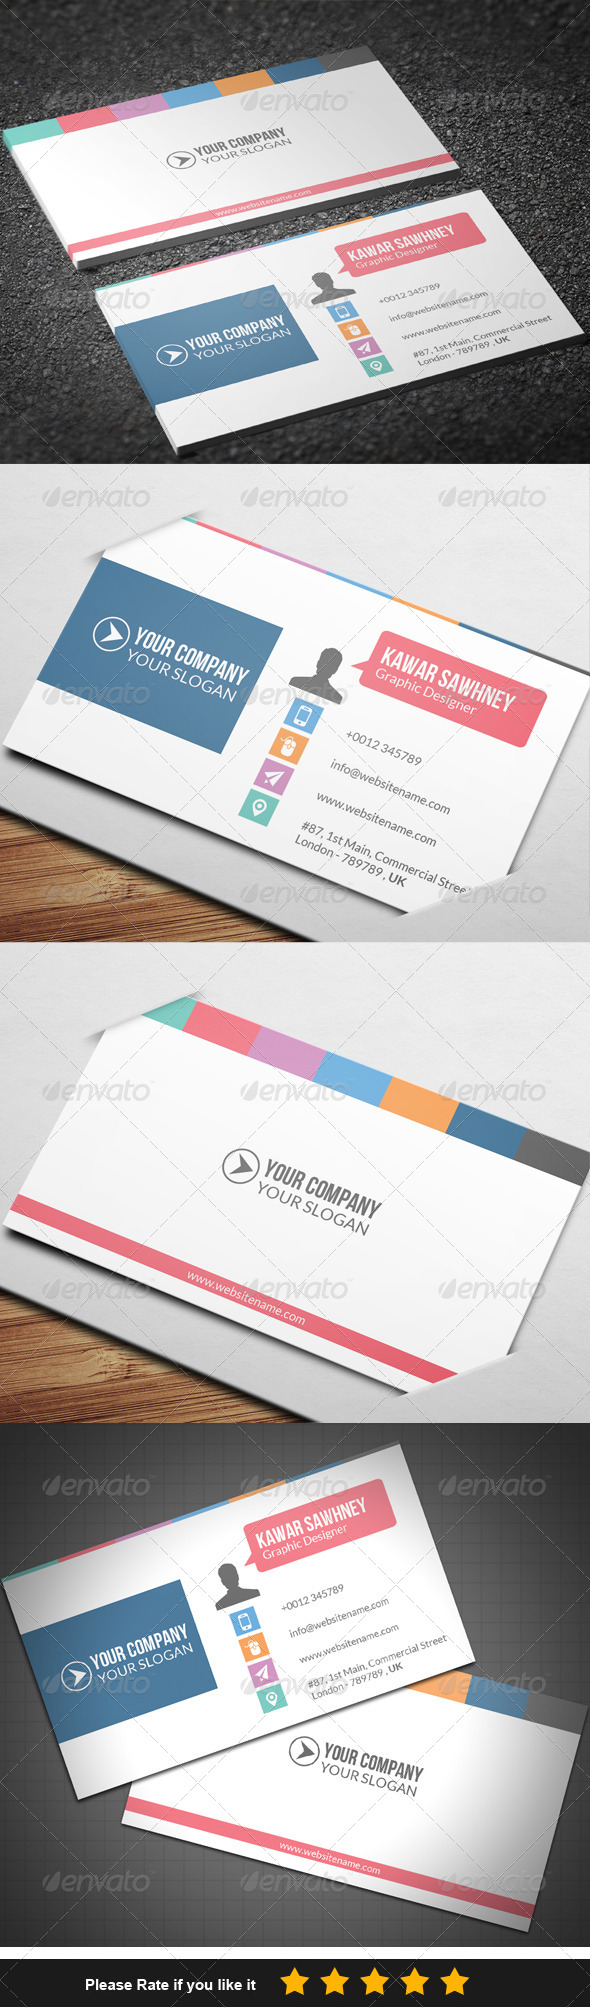 GraphicRiver Corporate Business Card 6 7742081